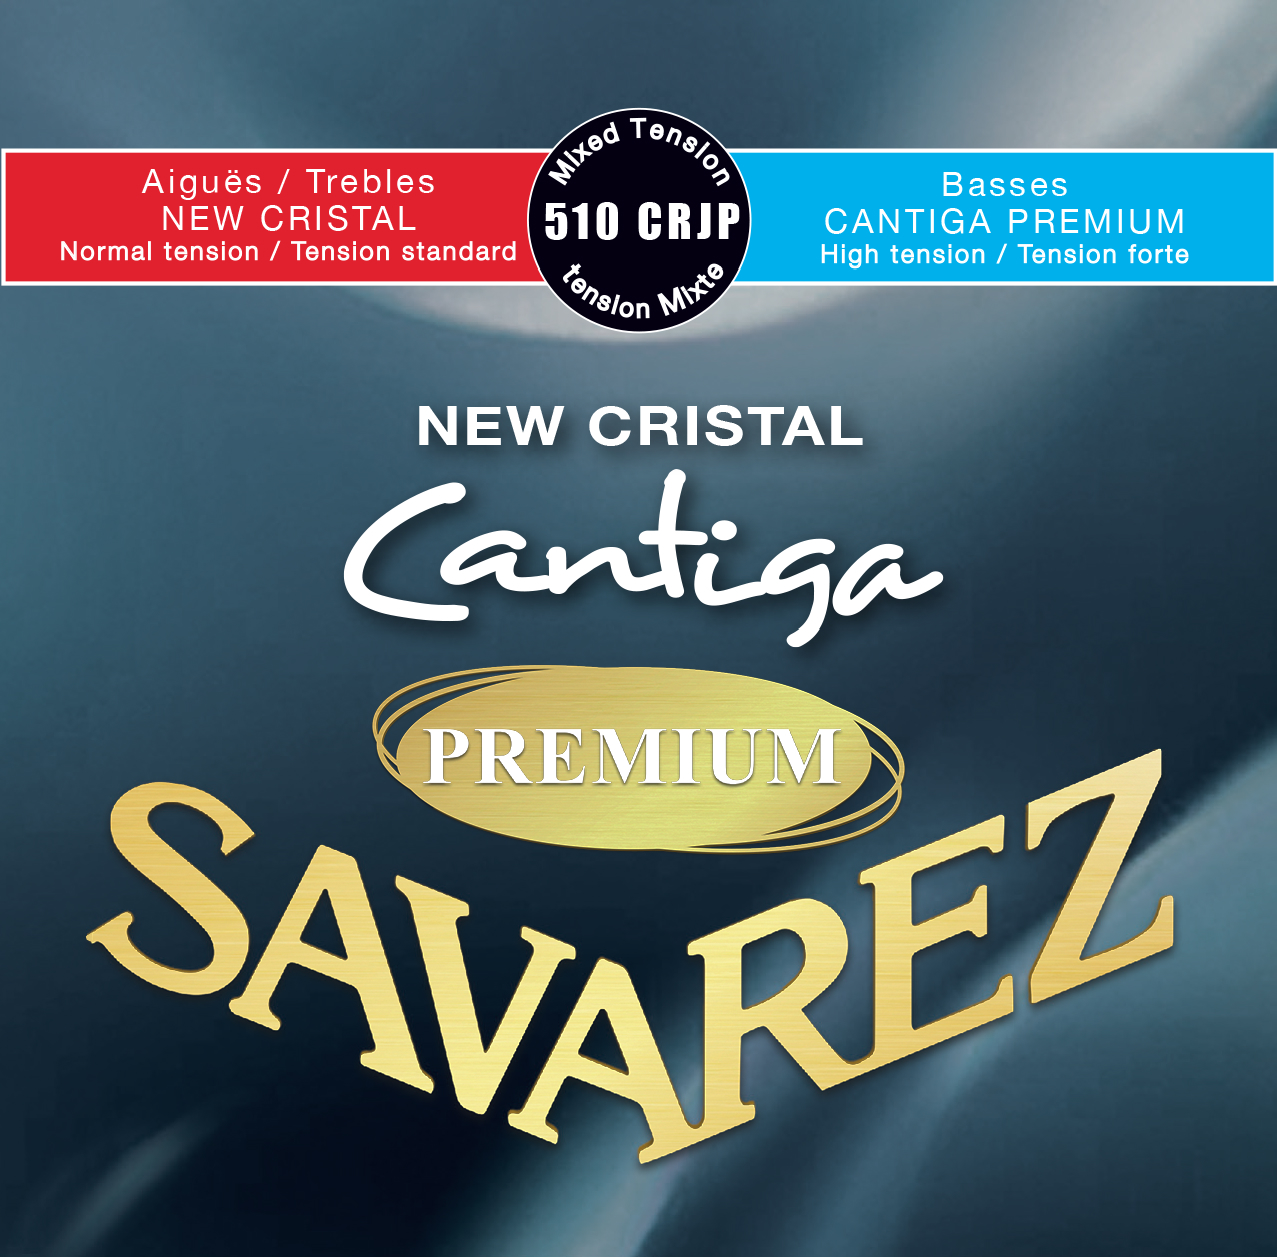 NEW CRISTAL CANTIGA PREMIUM MIXED TENSION 510CRJP